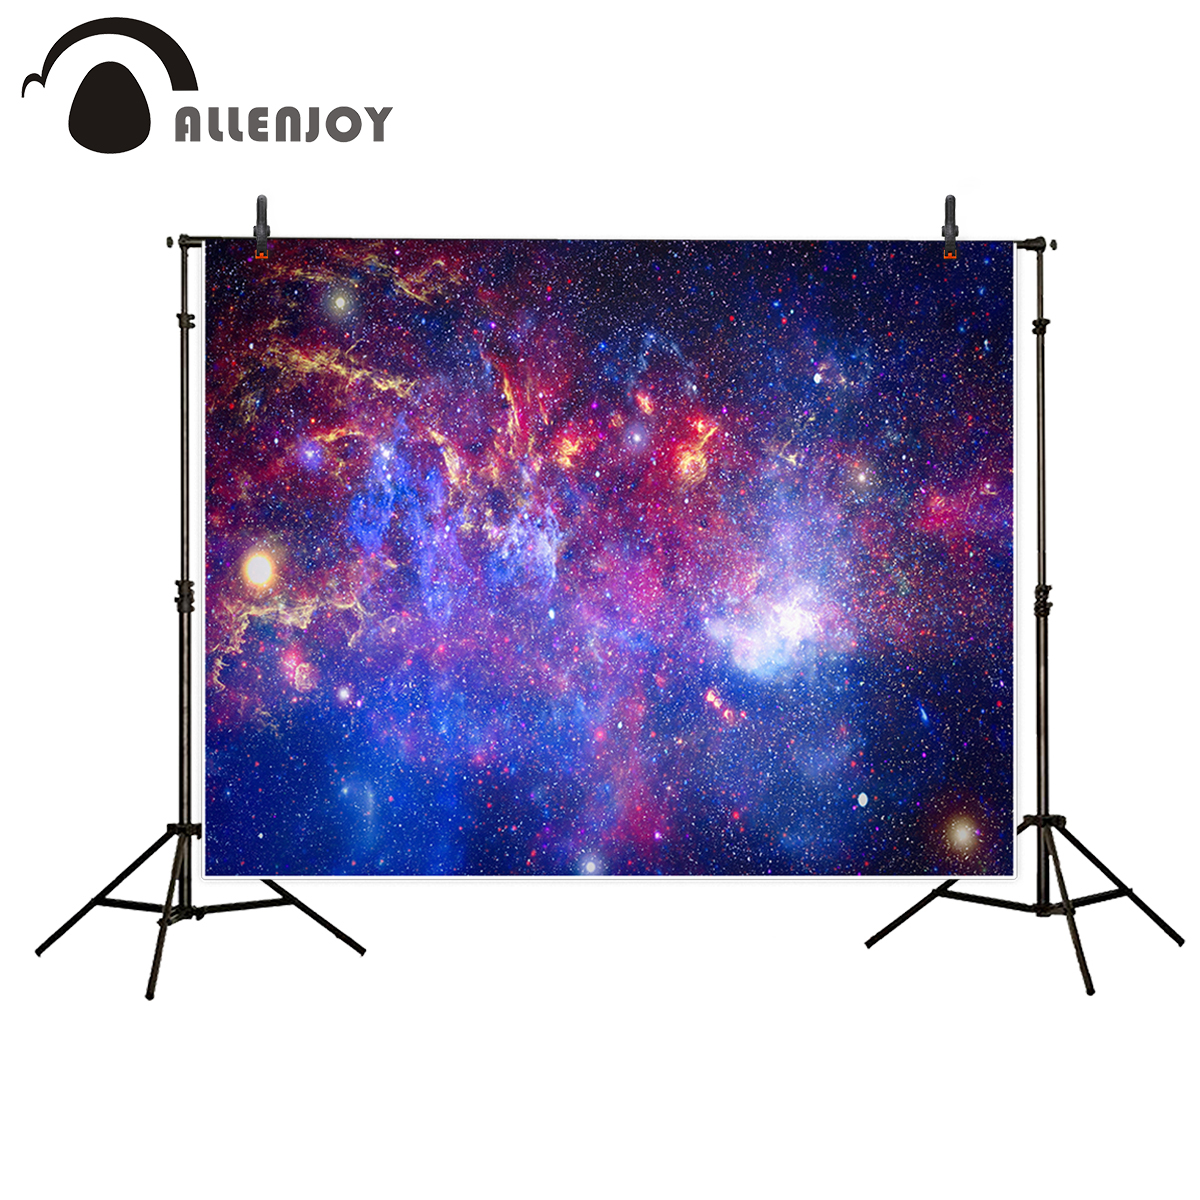 Allenjoy vinyl photographic background Cosmic space beautiful dream shock Photographic background photocall for studio study